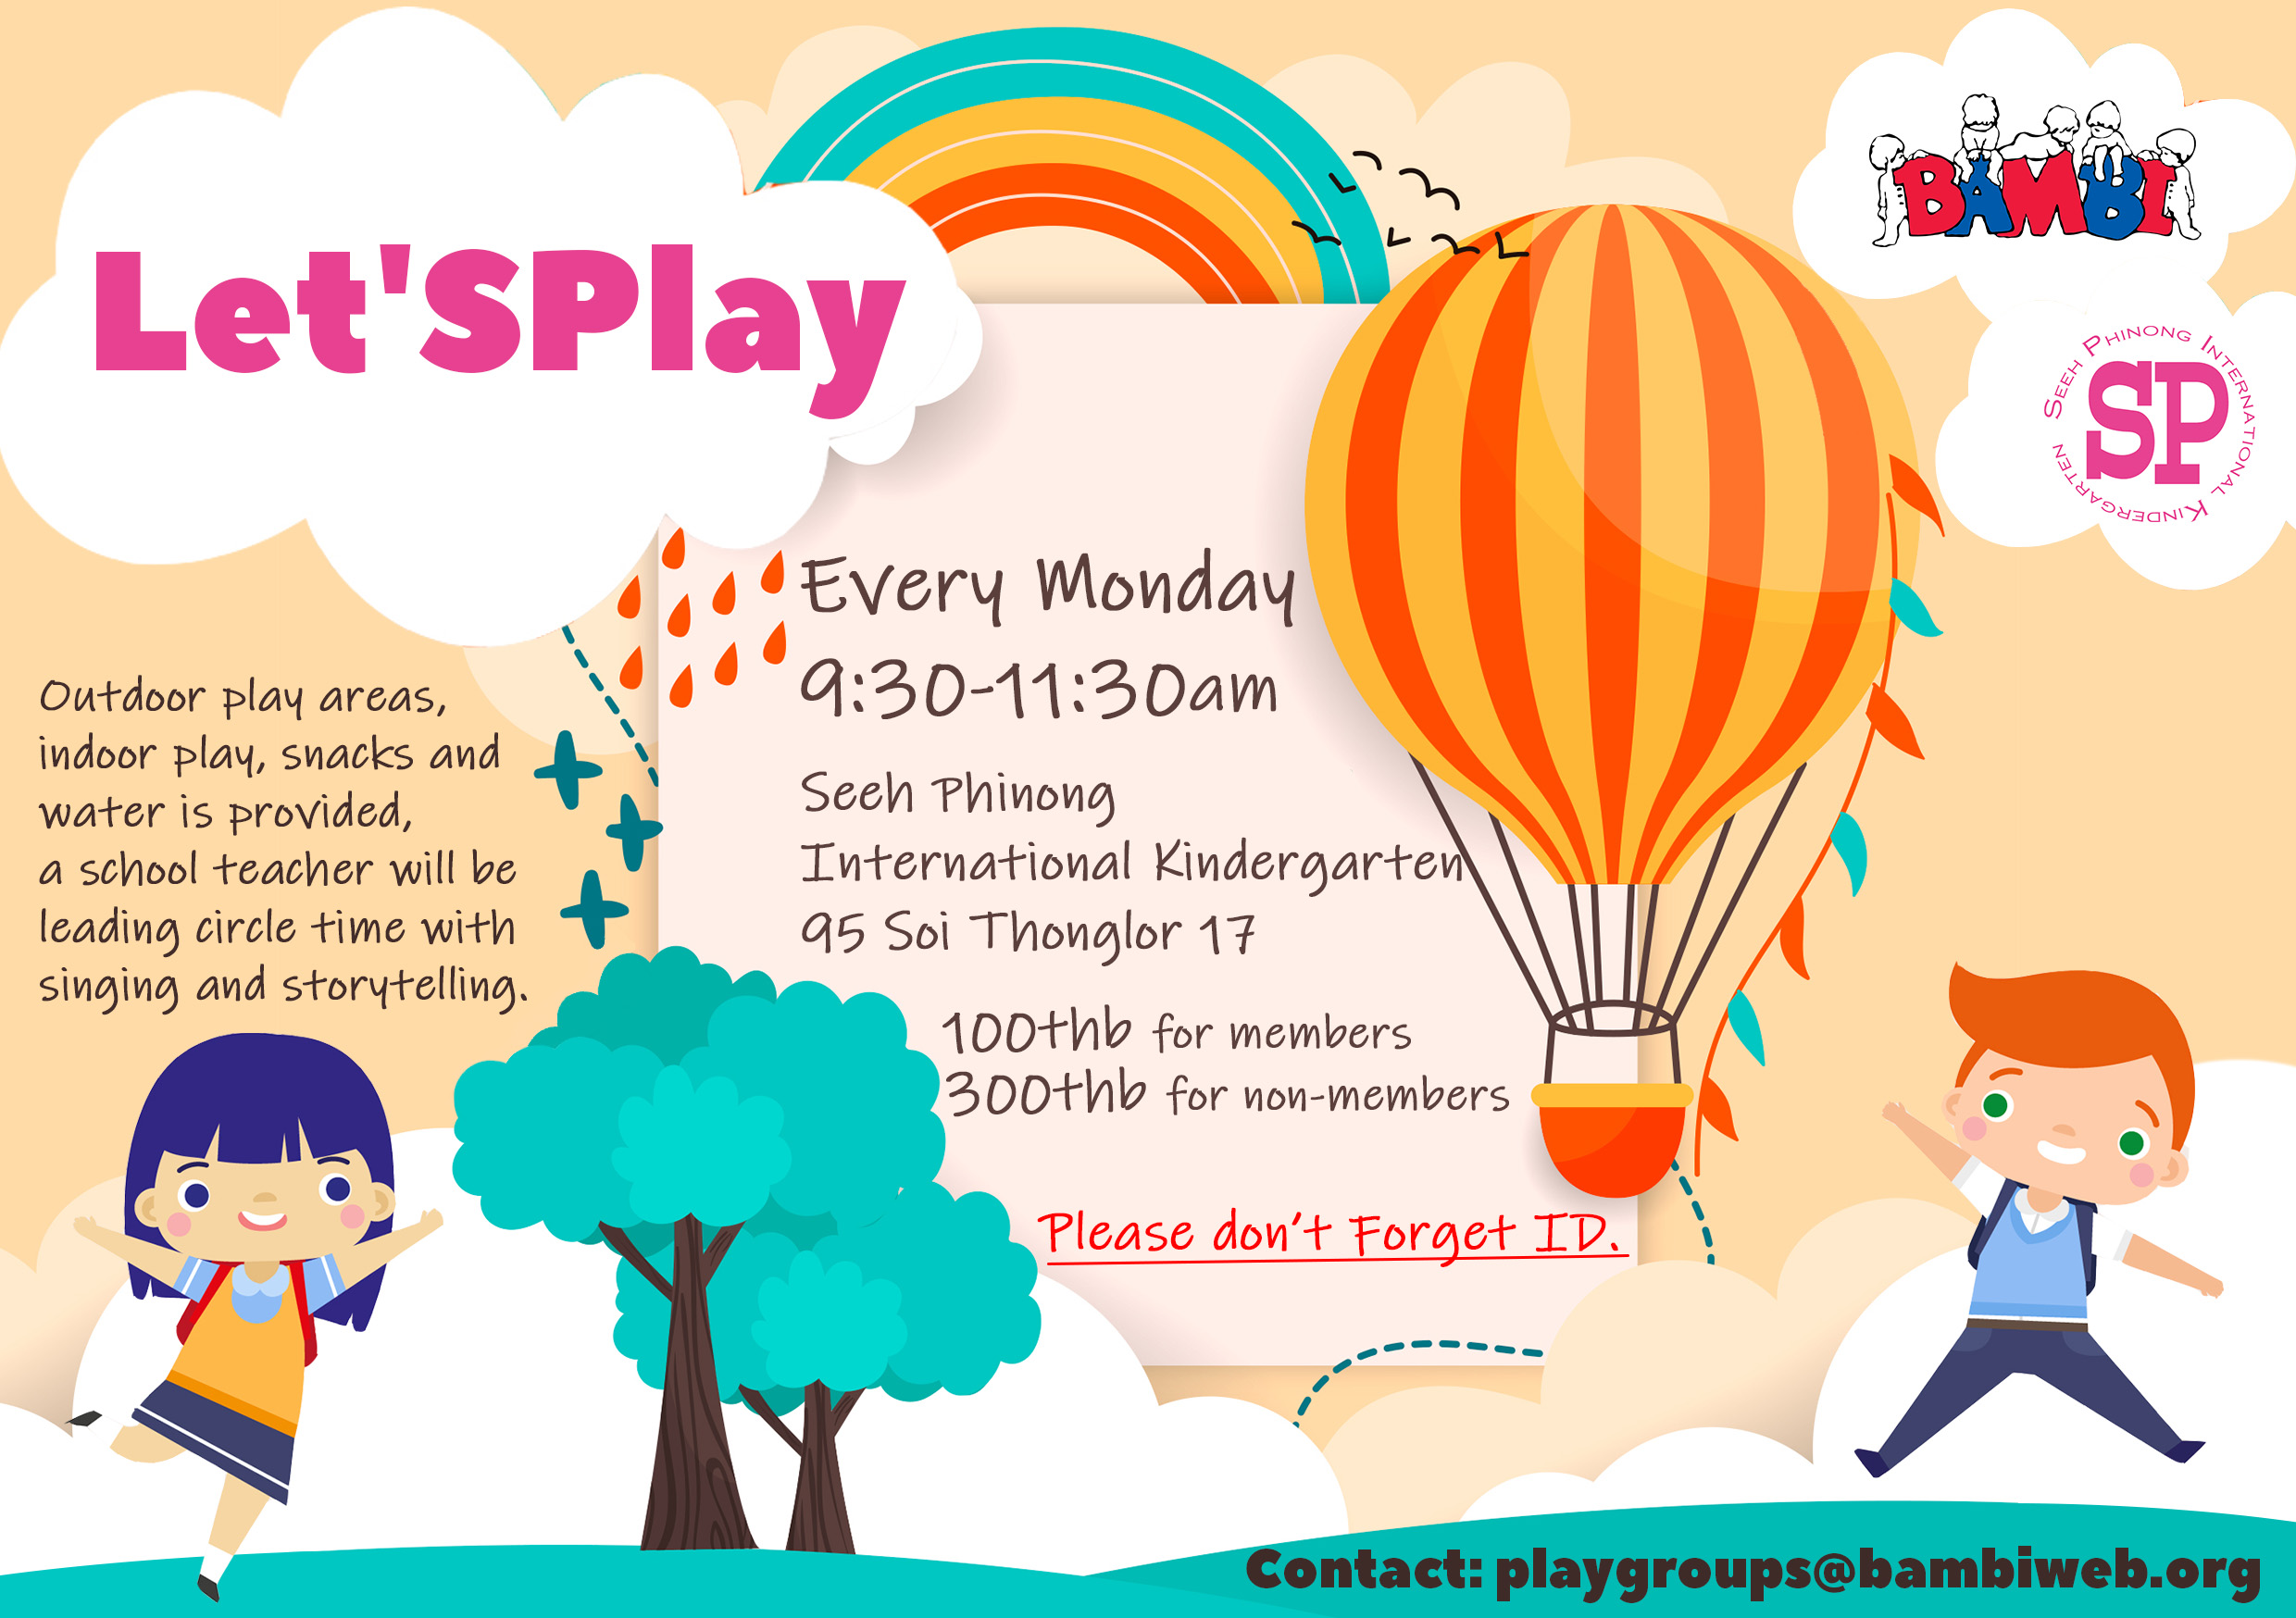 Let'SPlay Playgroup